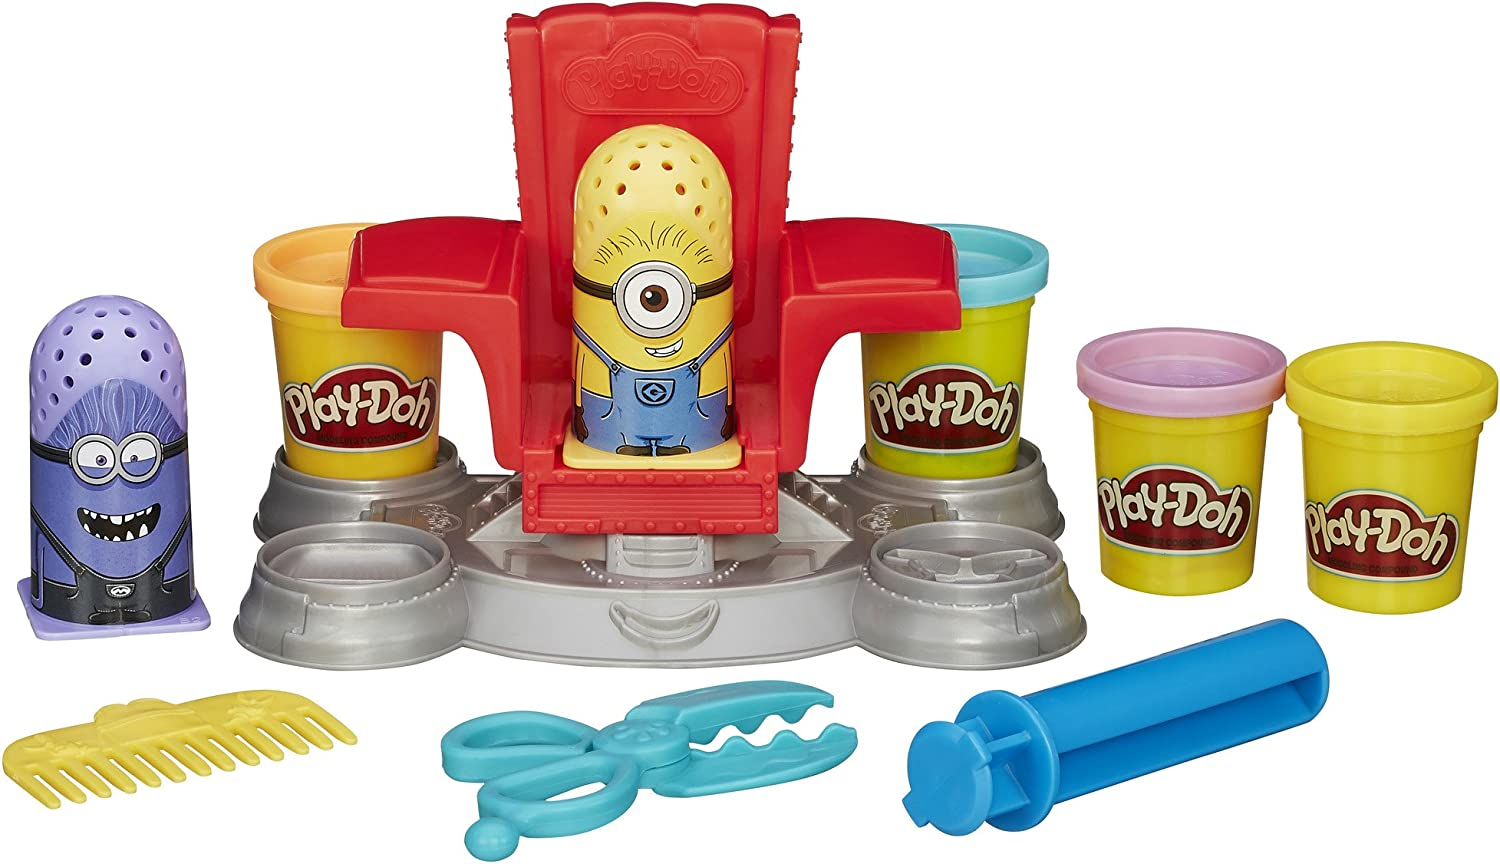 Top 13 Best Play Dough Sets For Boys (2020 Reviews & Buying Guide) 5